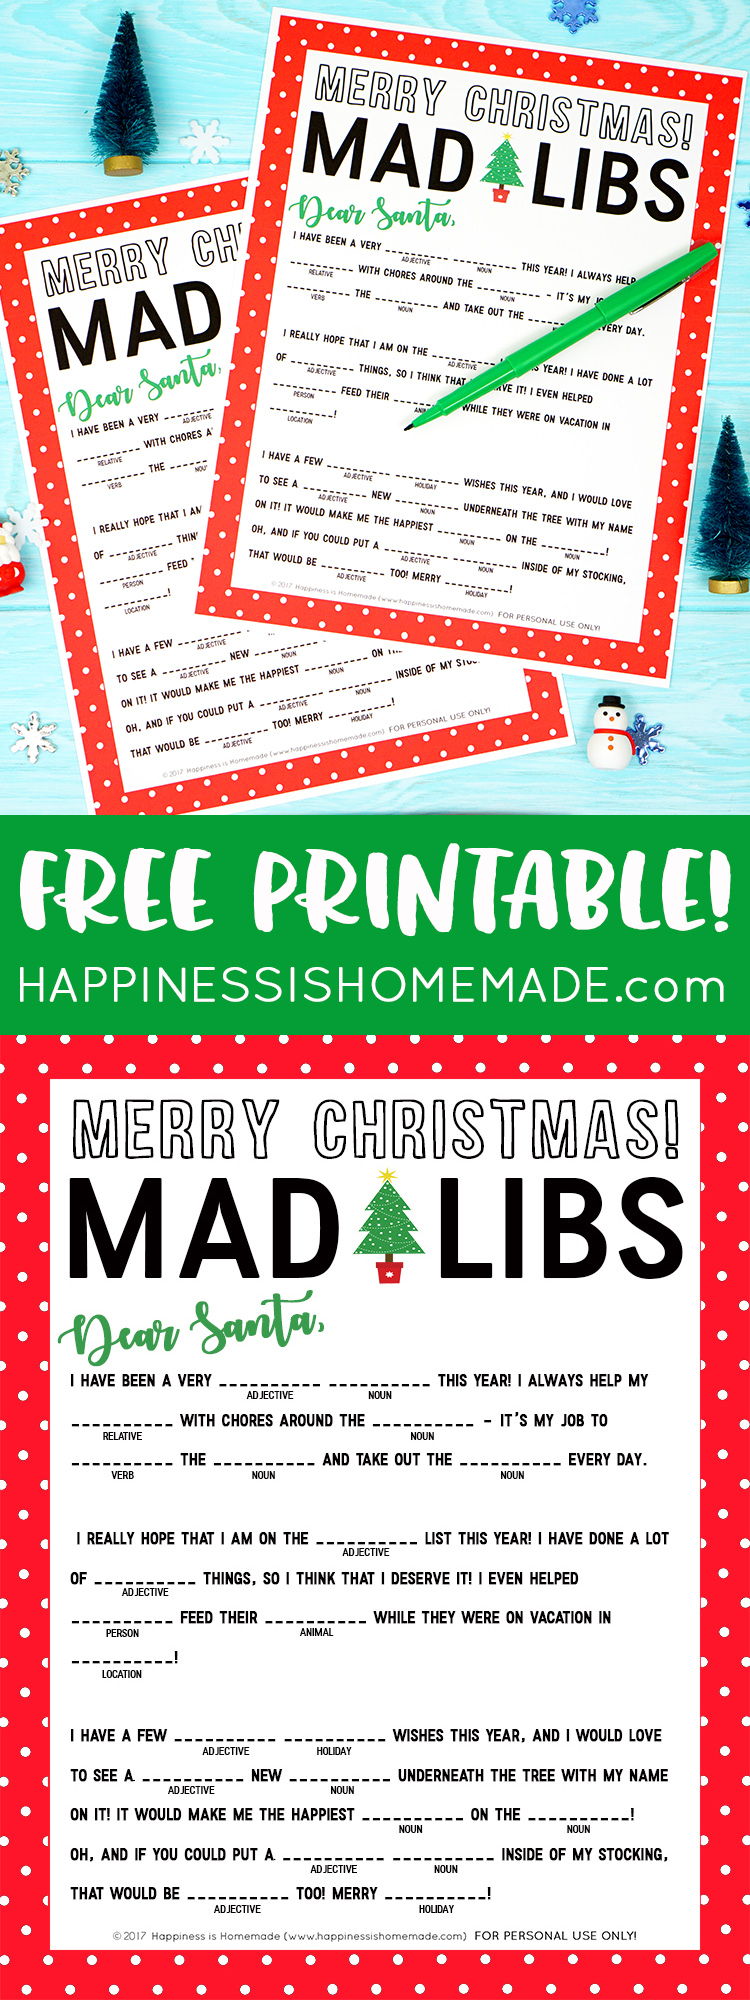 This fun Christmas Mad Libs printable is perfect for kids of all ages (and grown-ups, too!)! Great for parents, teachers, classroom moms, Scout leaders, and more!